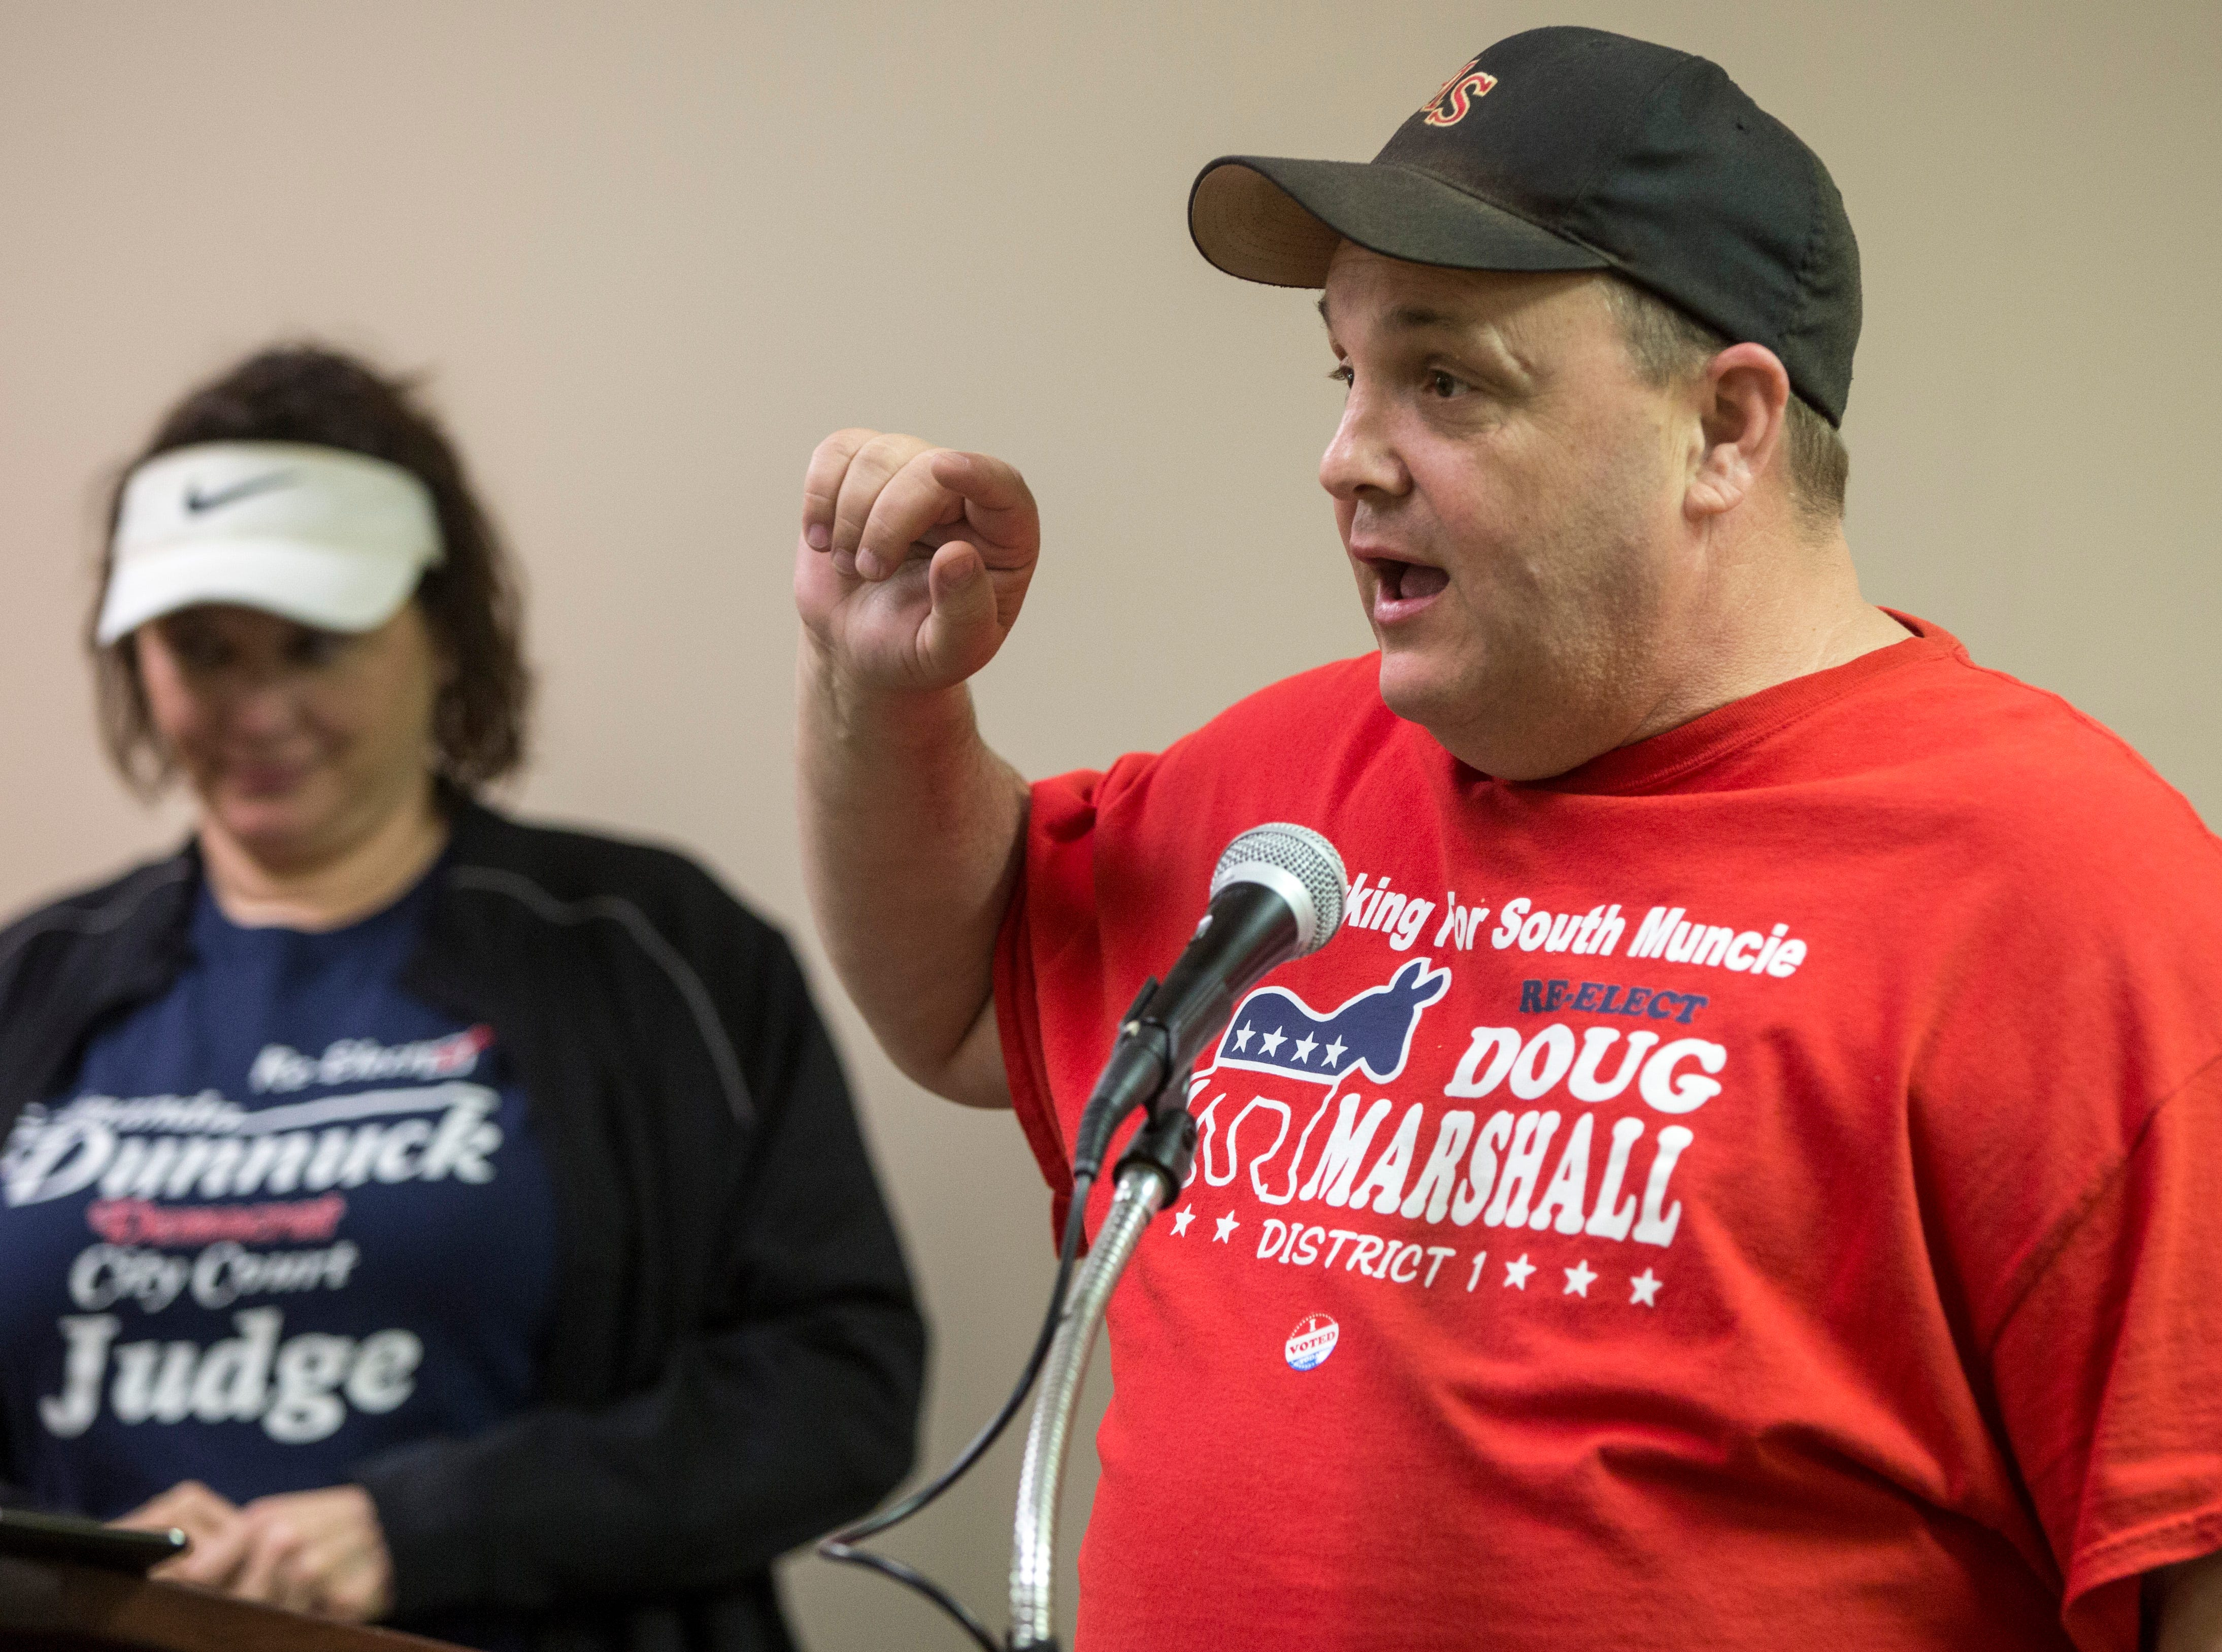 Doug Marshall gives a short victory speech at the Democratic Party's downtown headquarters on Tuesday night. Marshall, while not being challenged in the primary, will face off against a Republican in November.